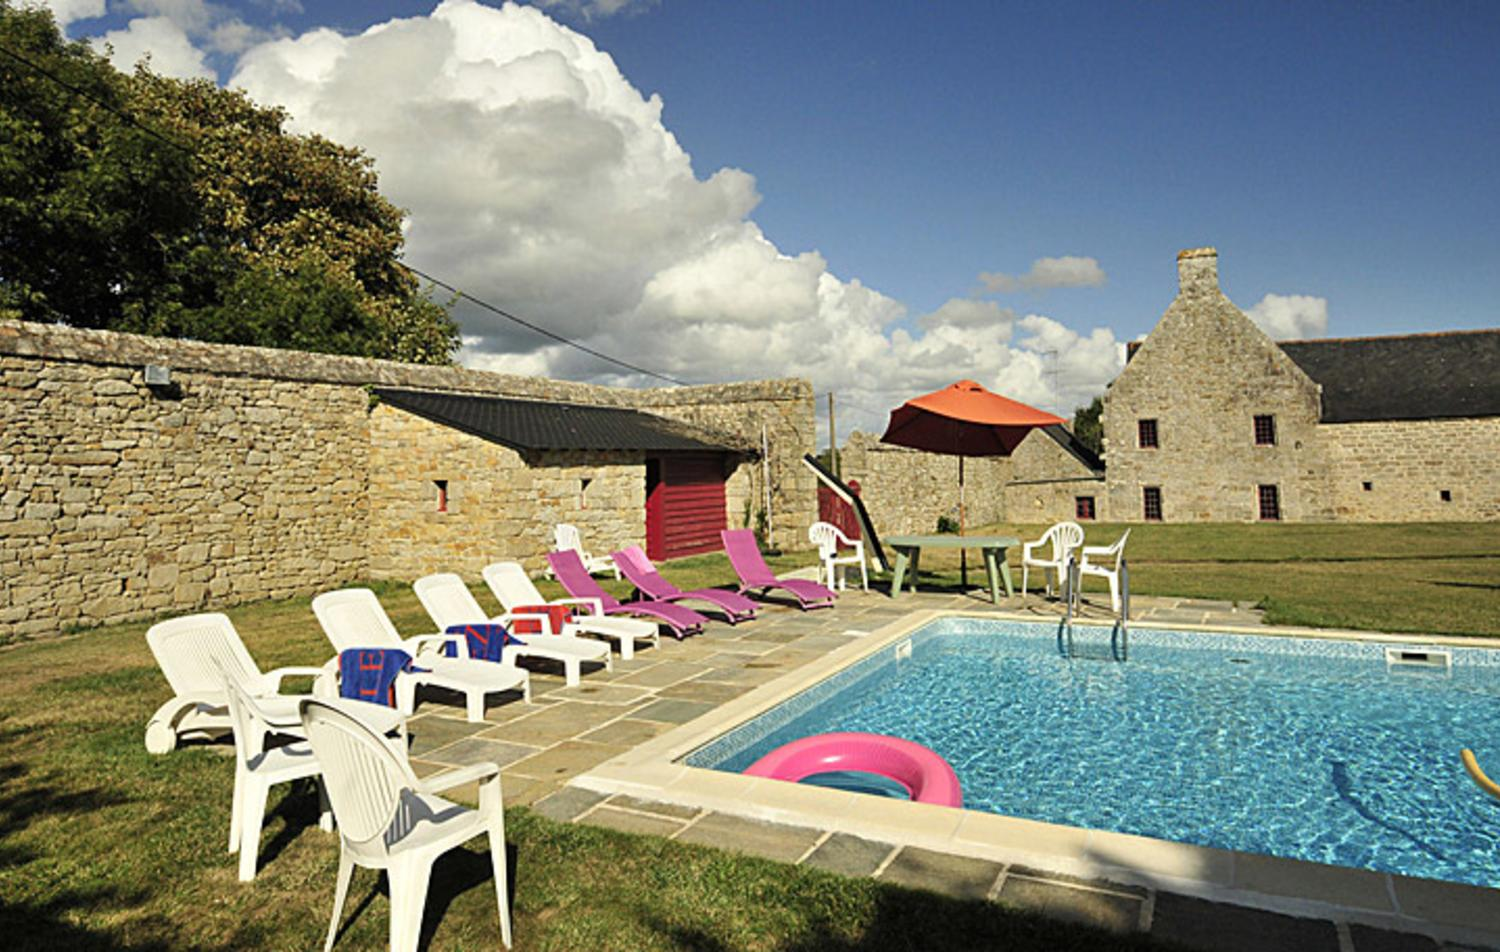 Shared pool 1, Breton Manor House, Brittany, Audierne.